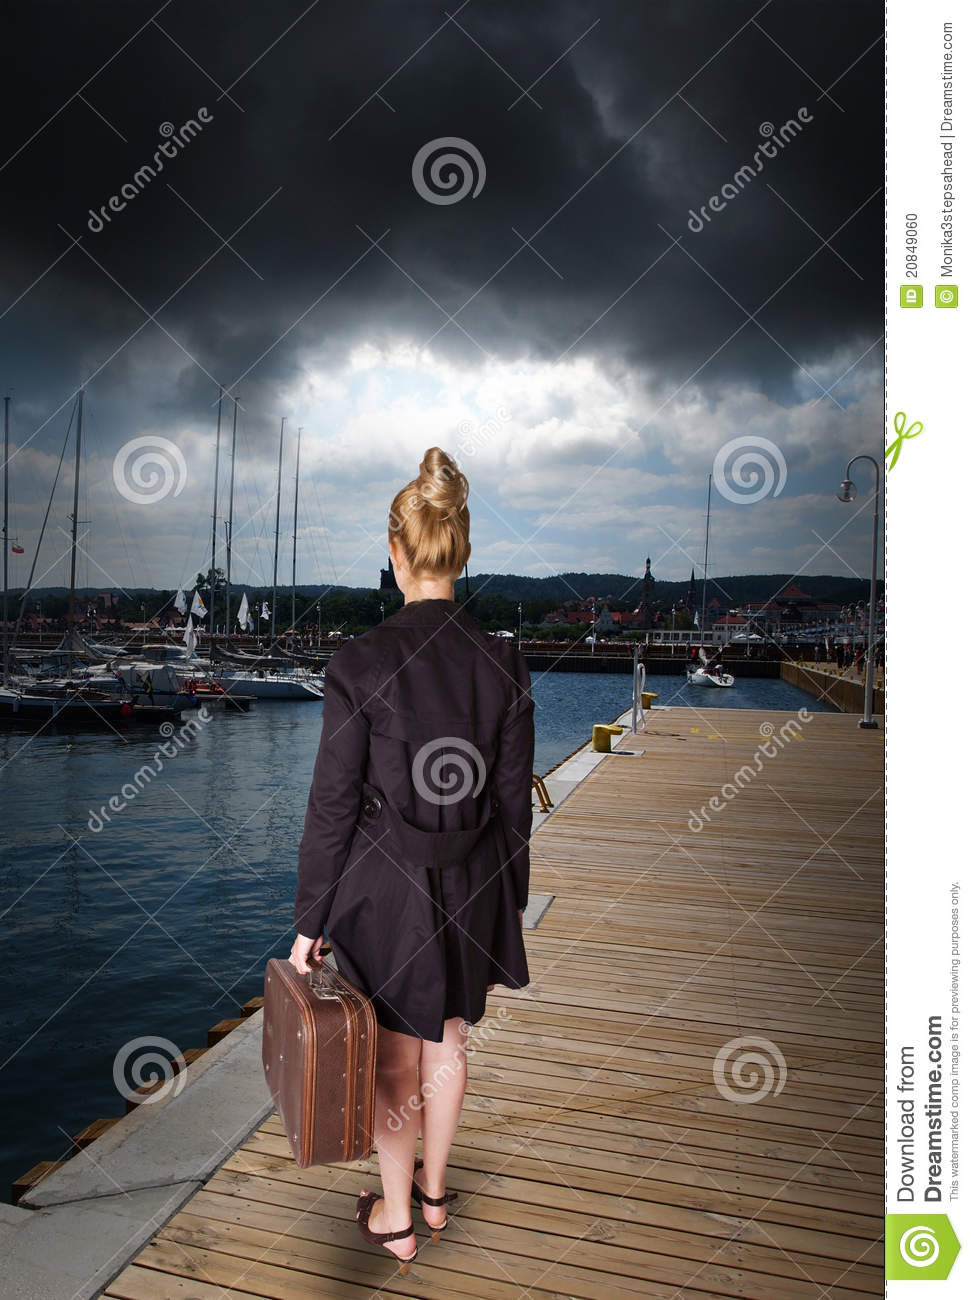 Woman at harbor - before storm